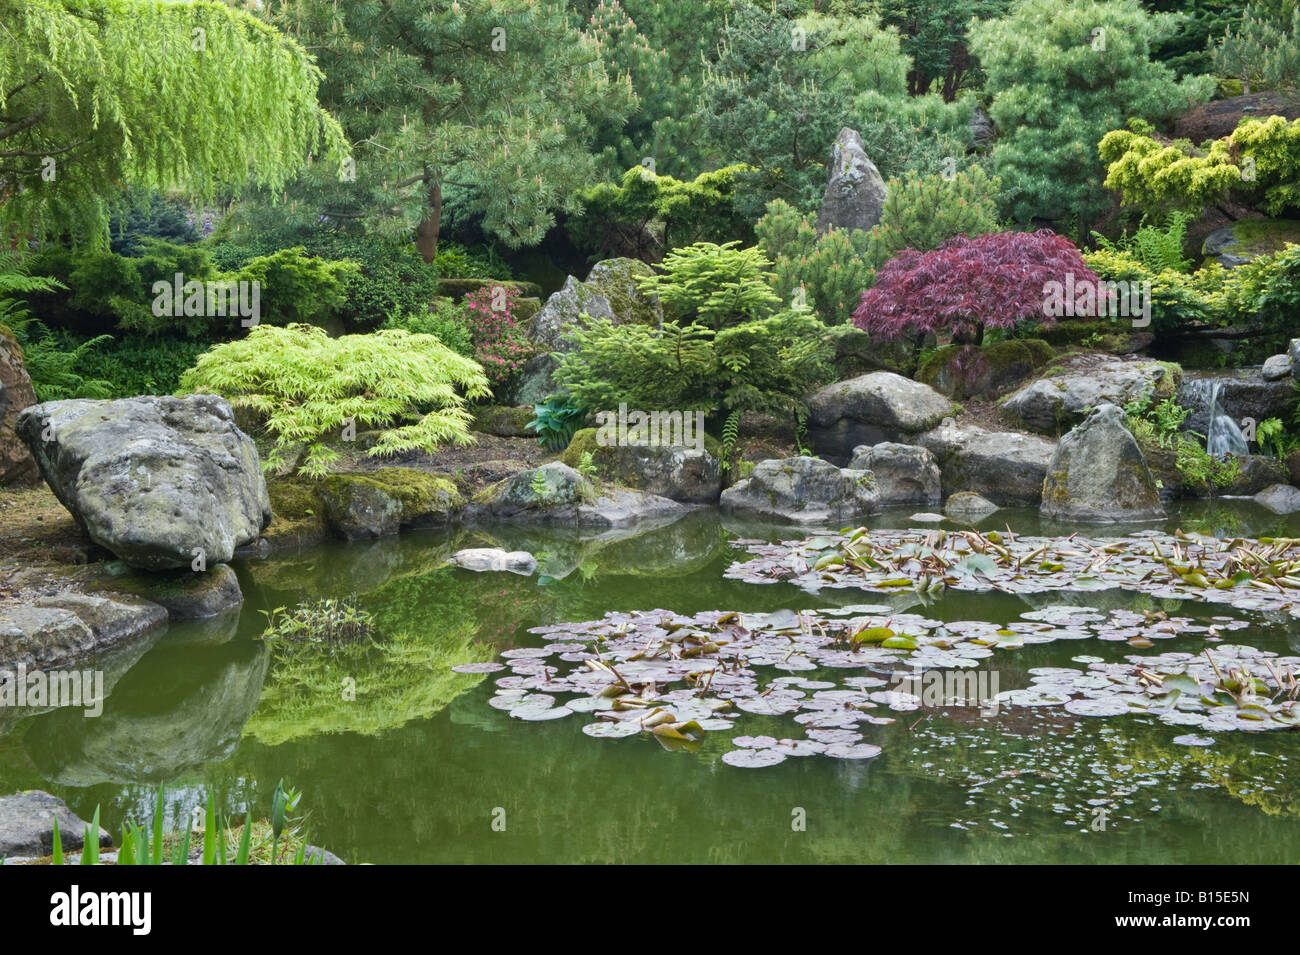 Garden Design Yorkshire pond in a rock garden designbahaa seedhom north yorkshire